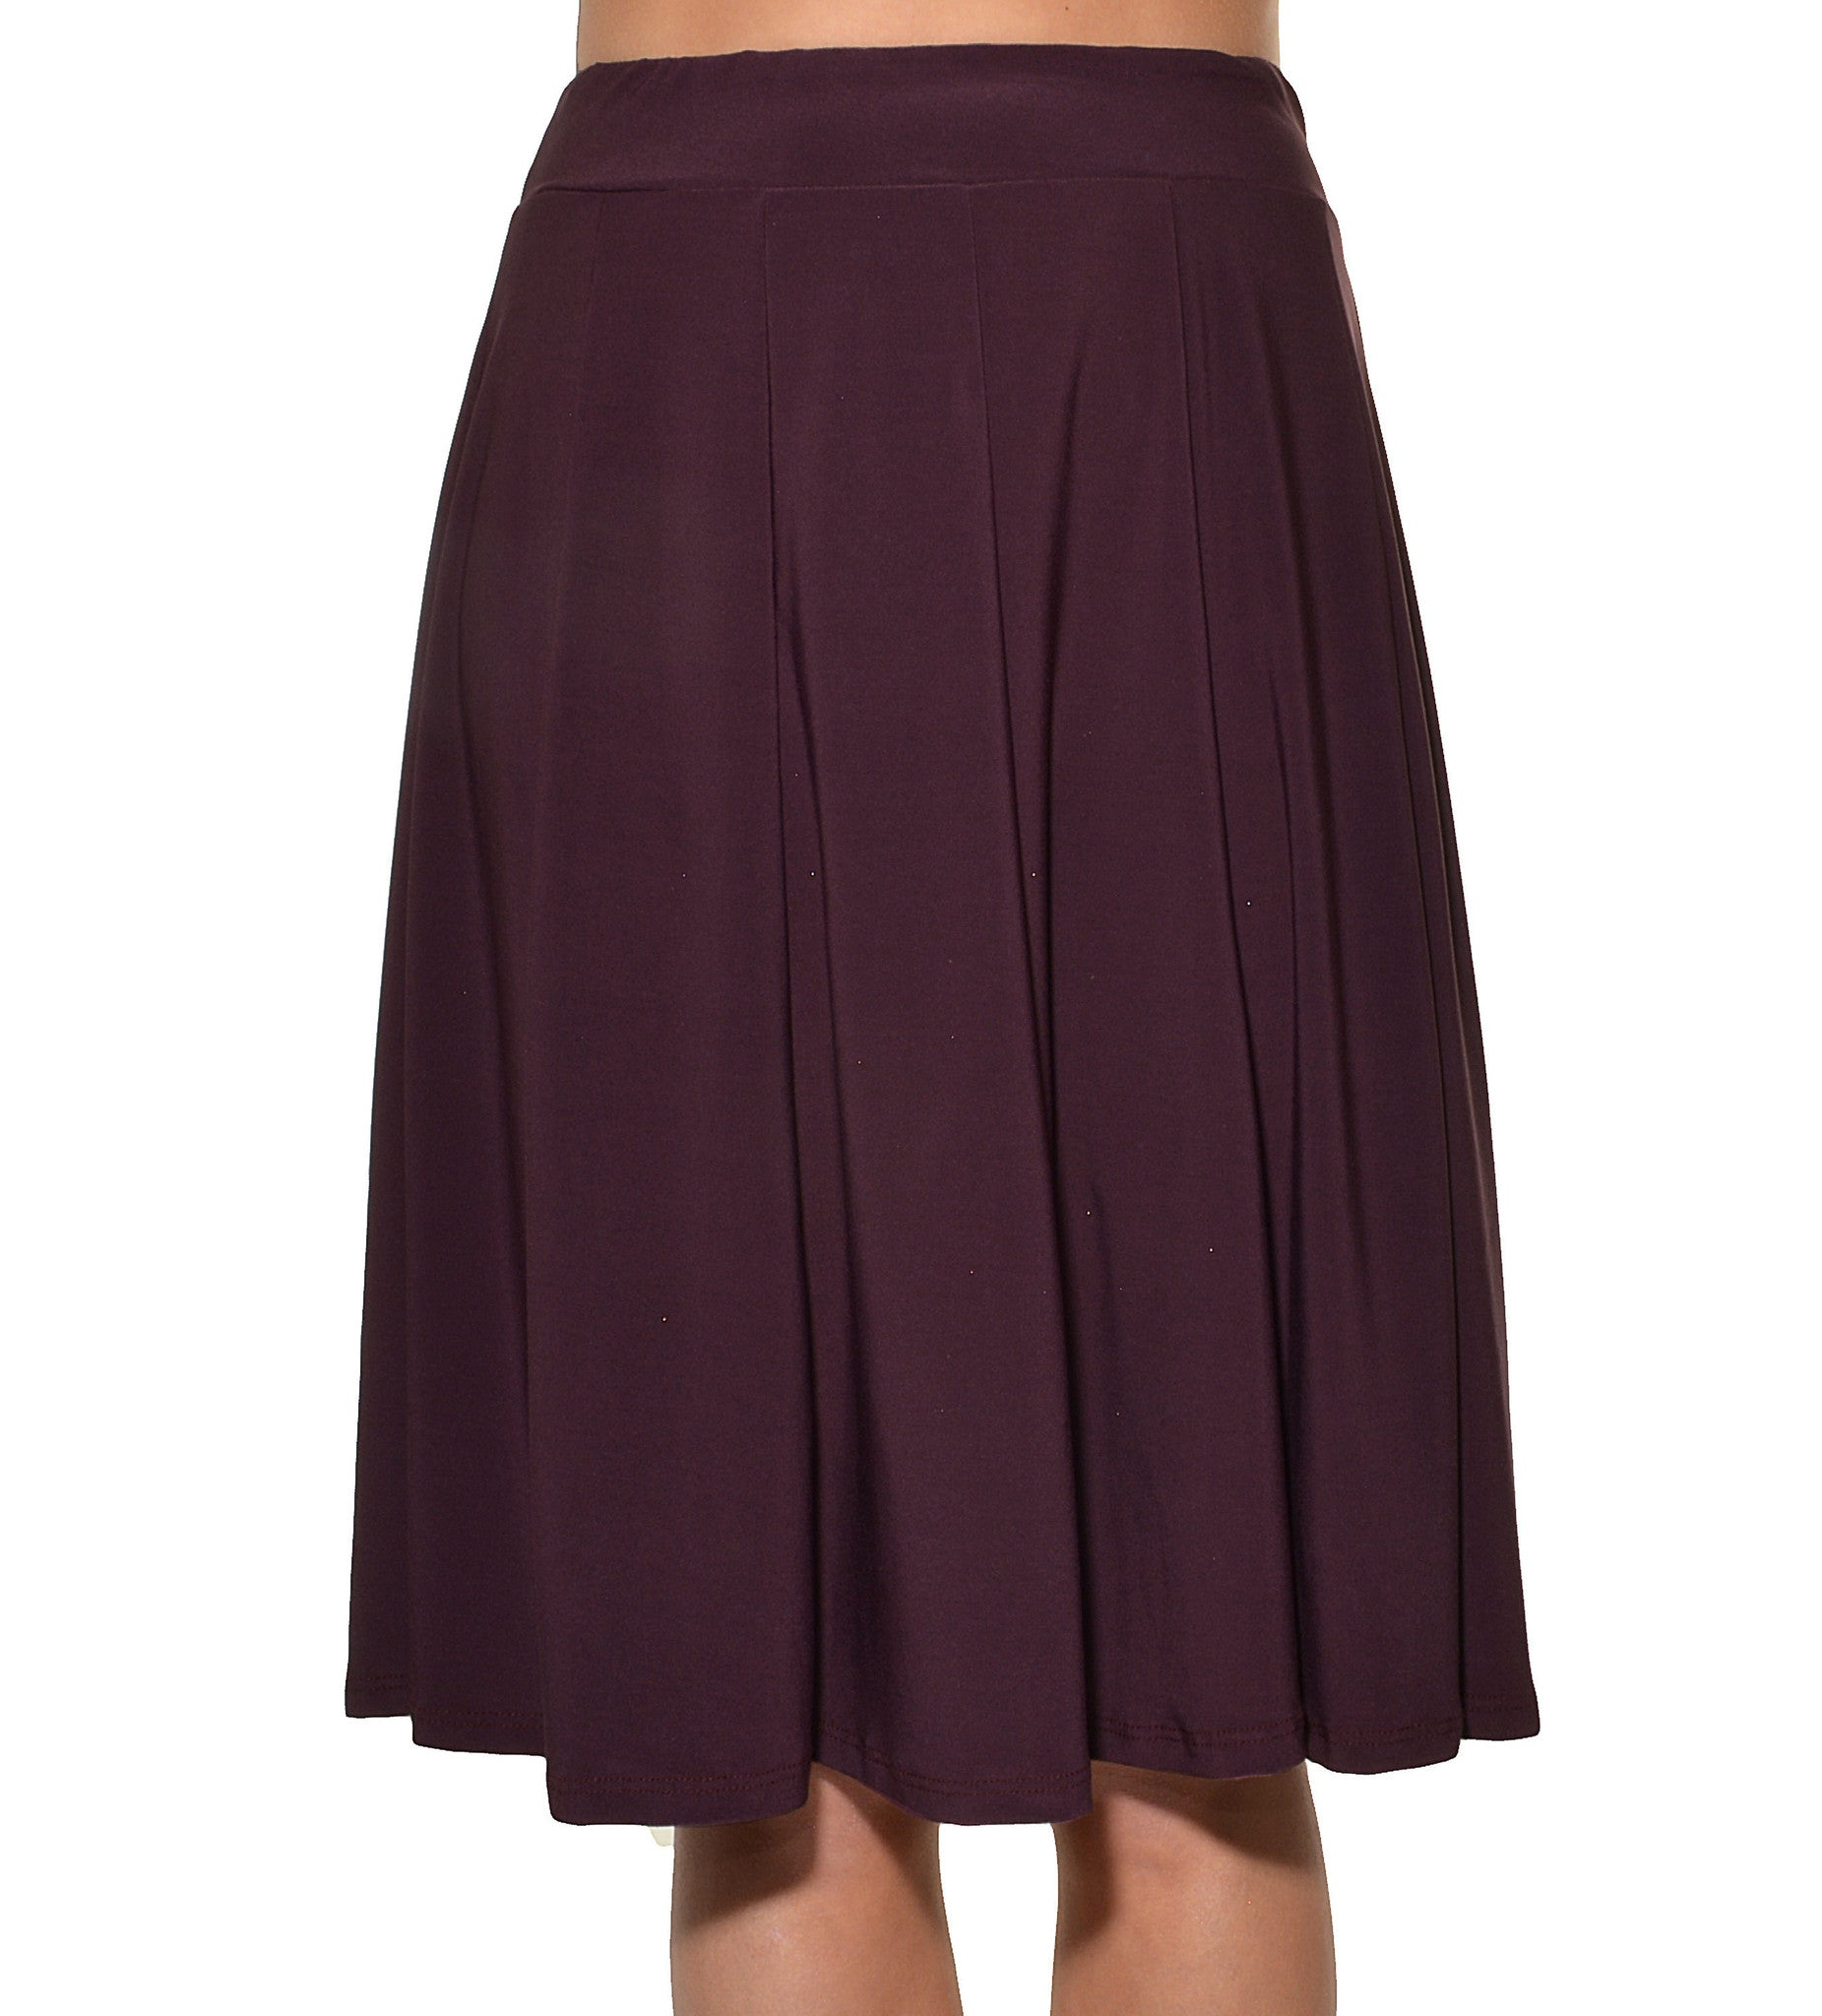 Avital Panel Aline Stretch Skirt (Purple Solid),Skirts,Avital - Discount Divas